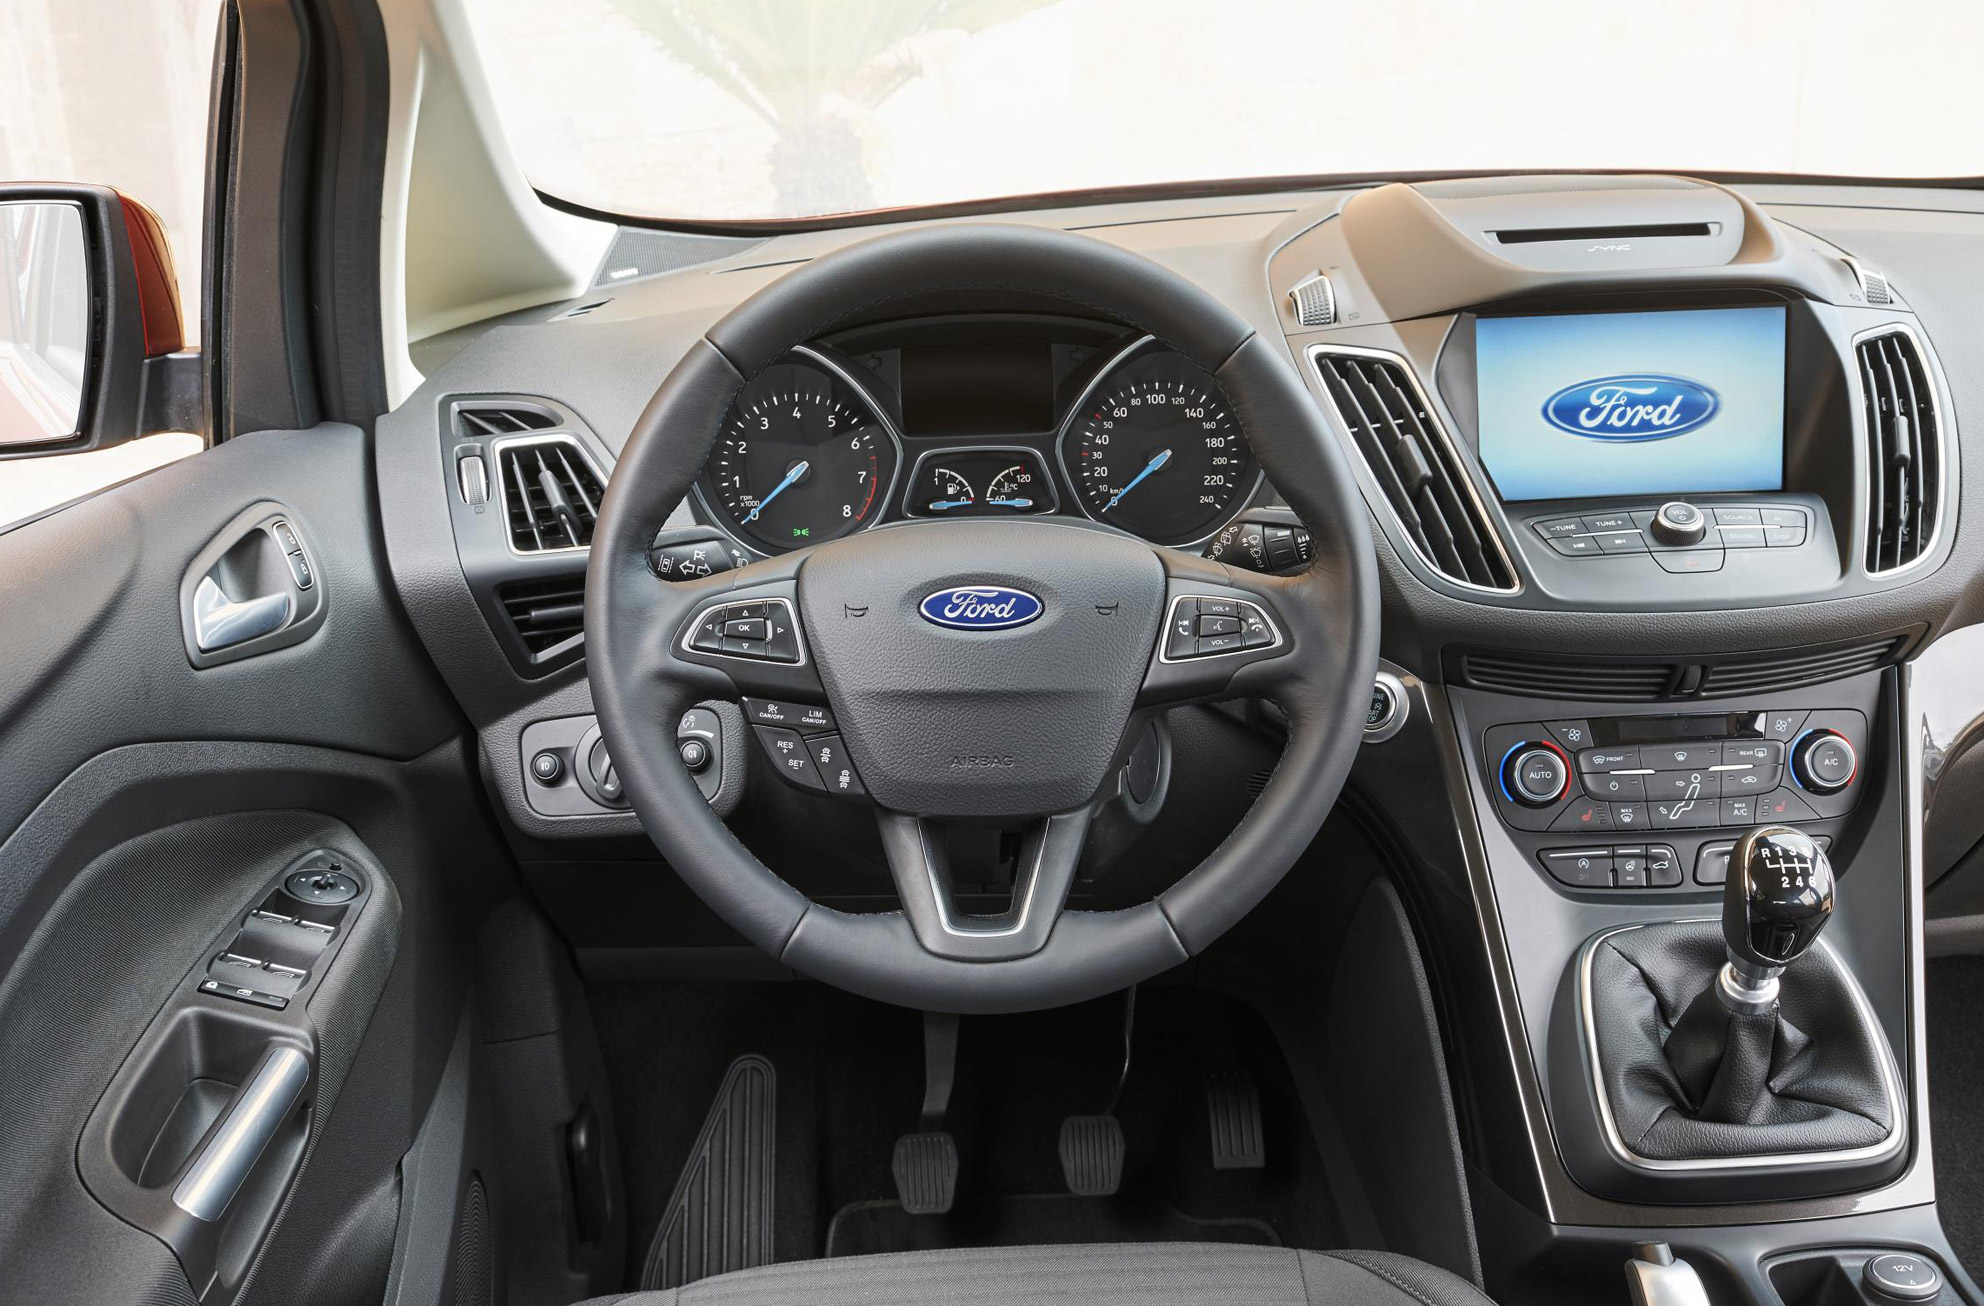 ford grand c max review 2015 first drive motoring research. Black Bedroom Furniture Sets. Home Design Ideas